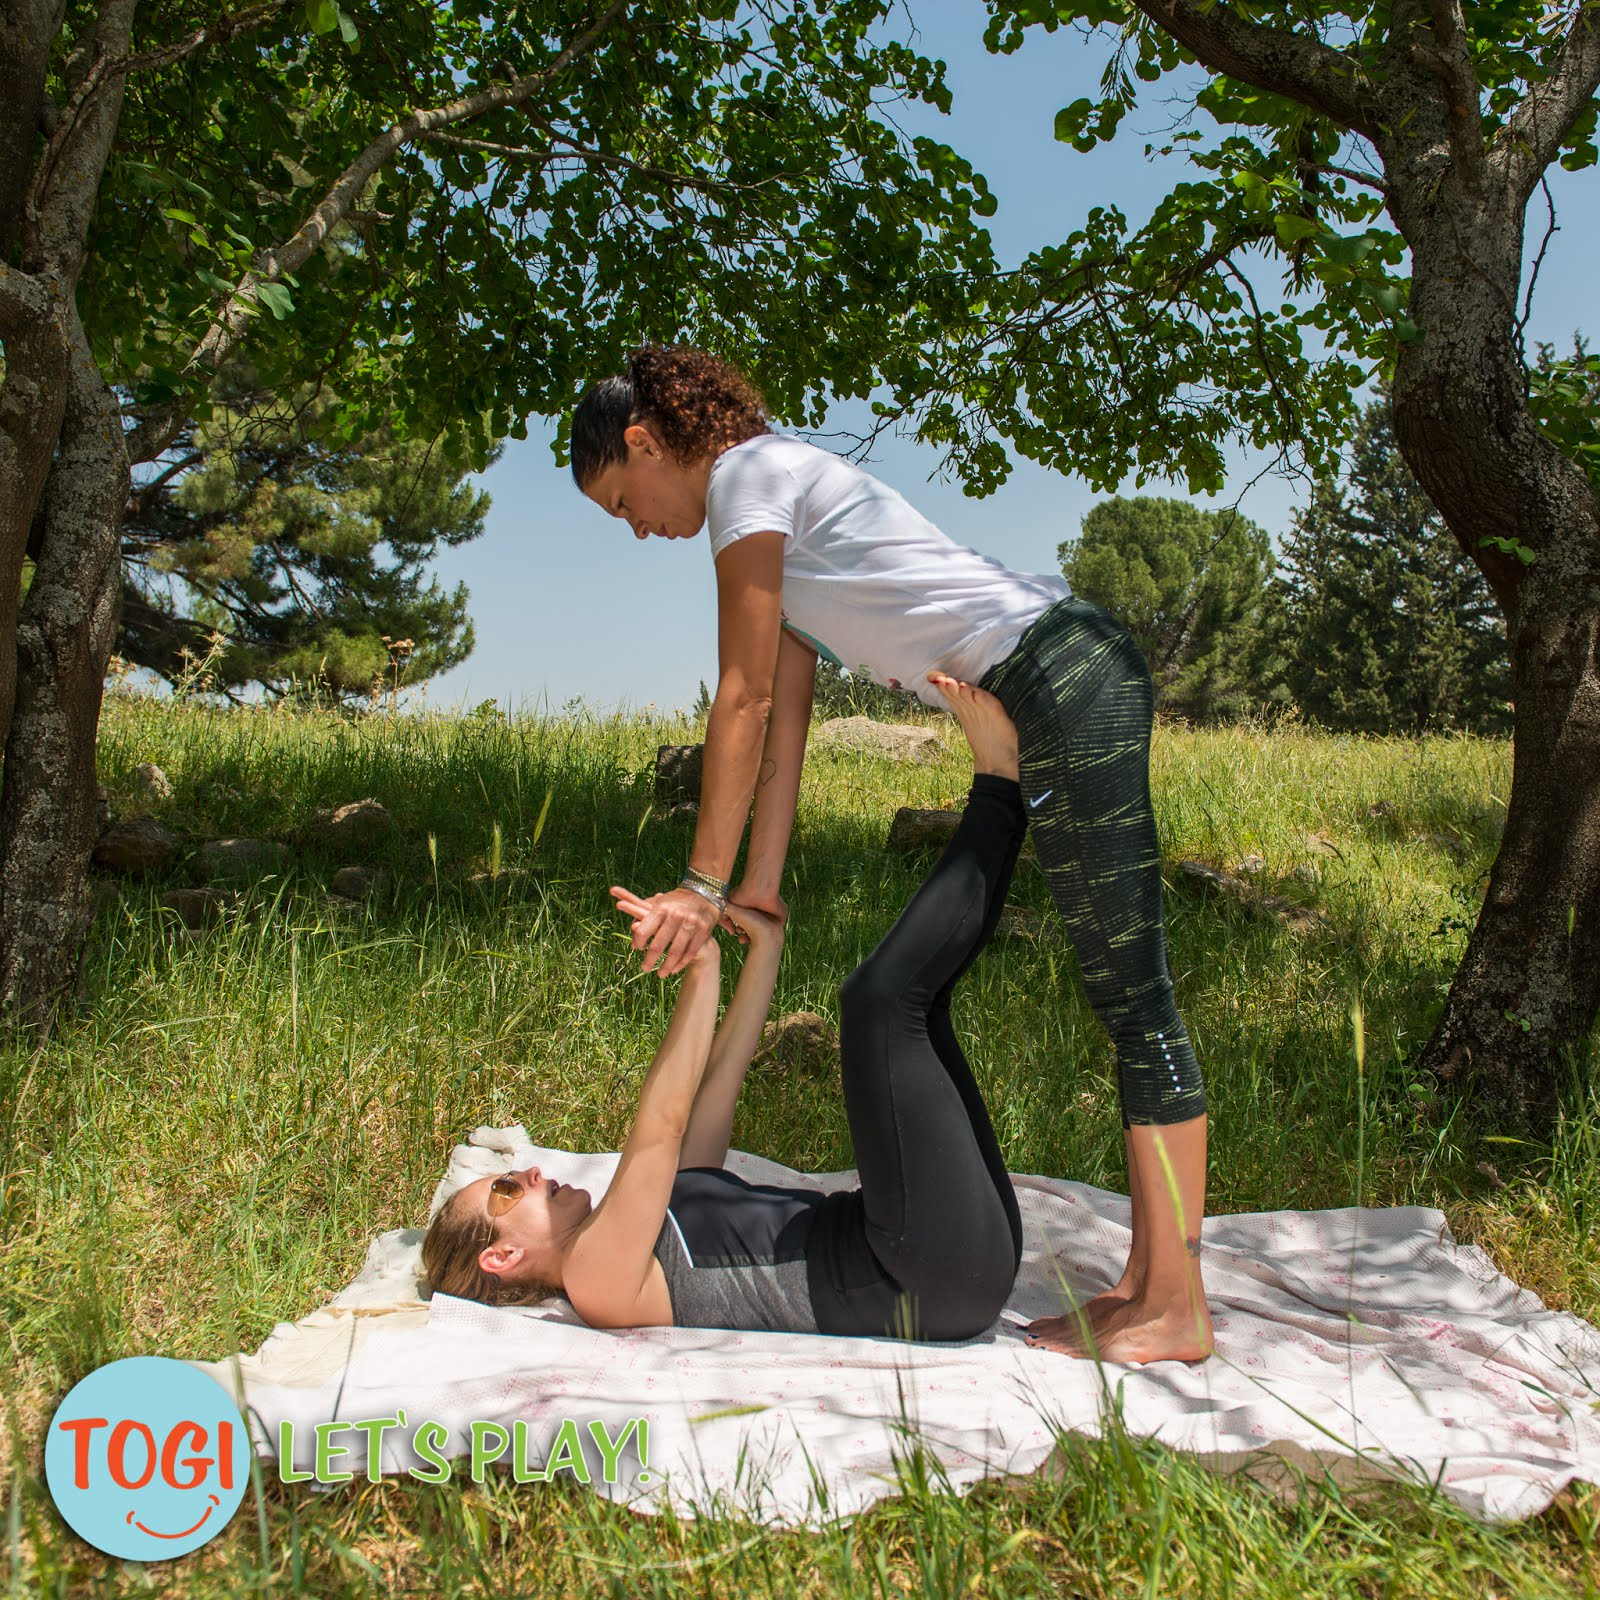 Togi Play Together 7 Acro Yoga Exercises For Parents And Children Ages 3y To 12y Or More